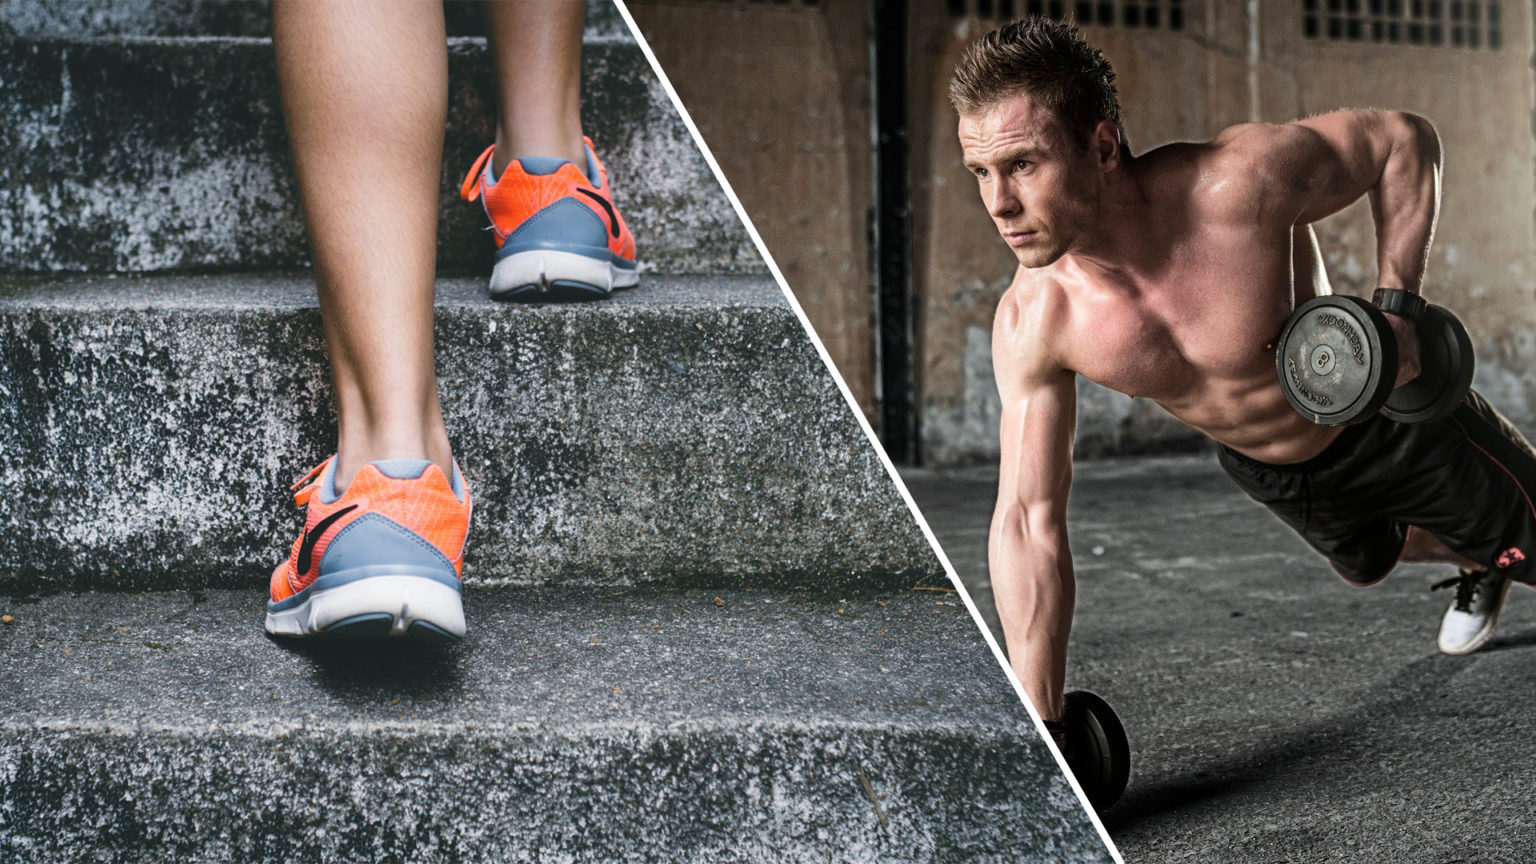 Fitness for beginners and core stability